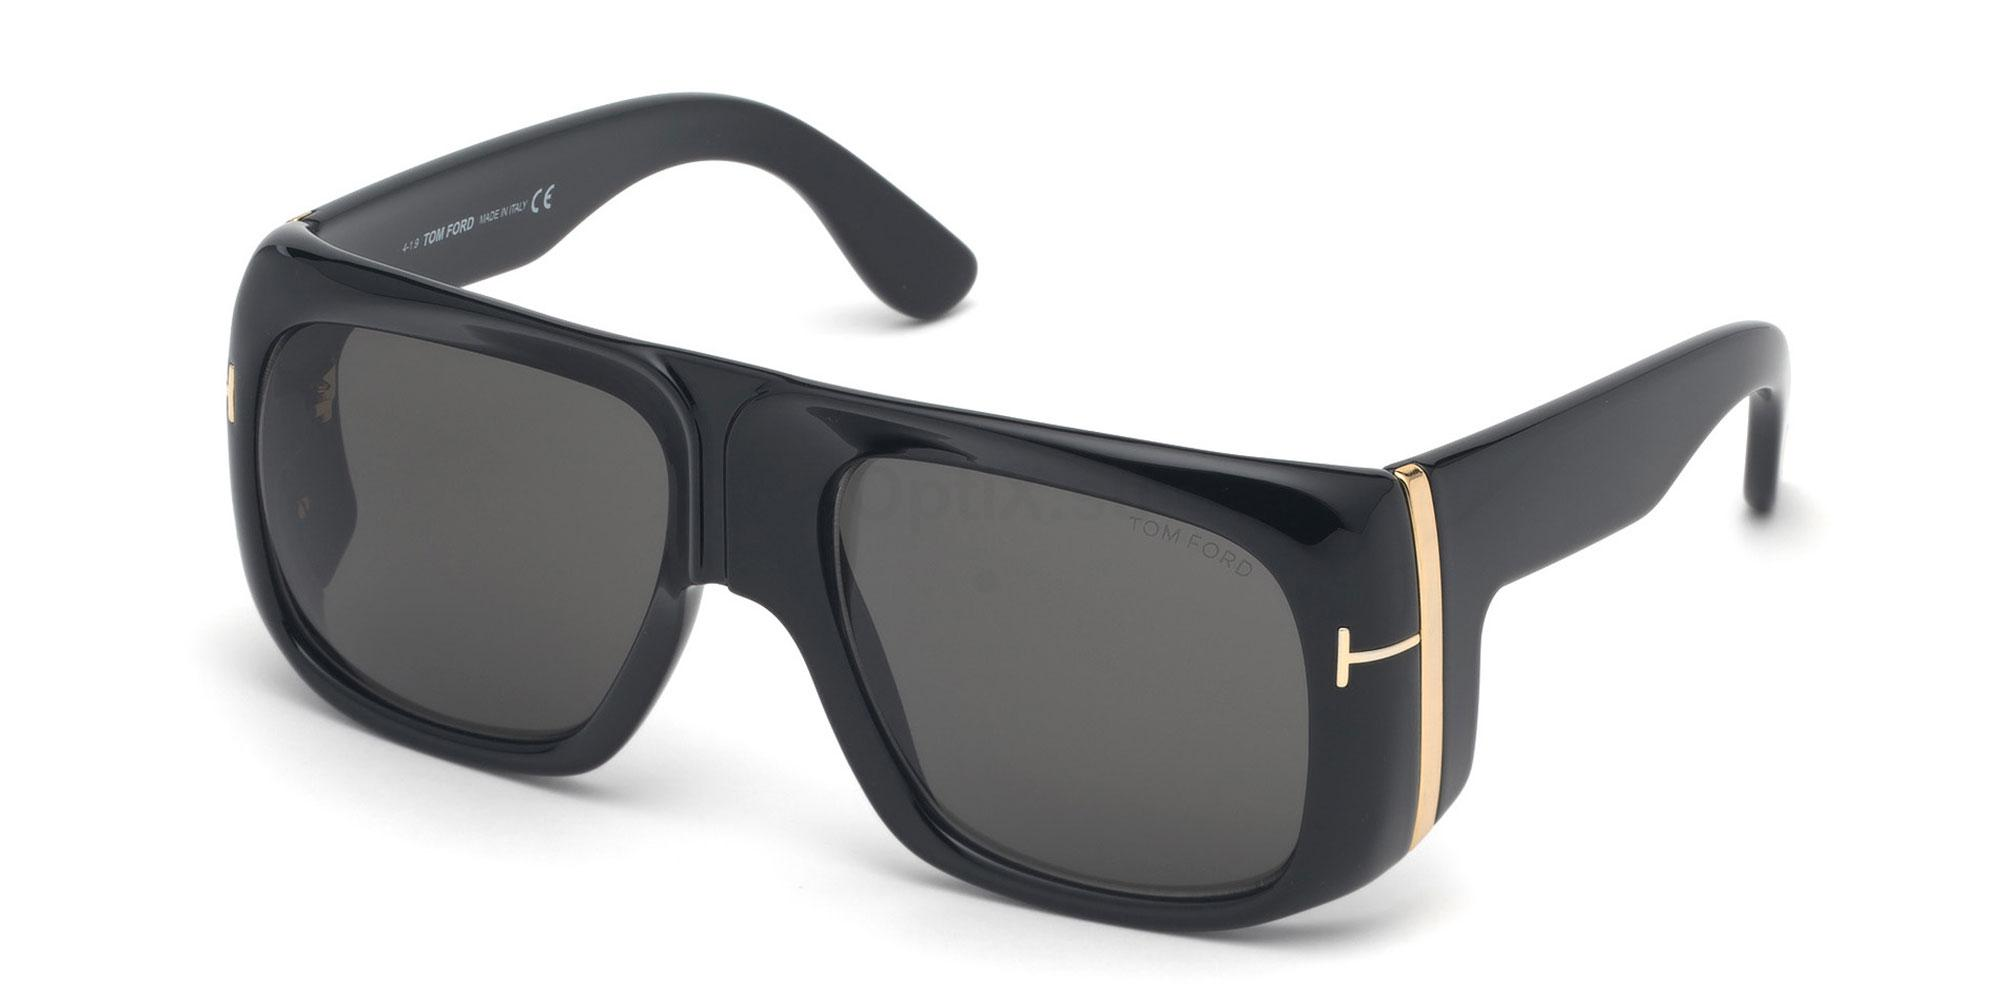 01A FT0733 Sunglasses, Tom Ford